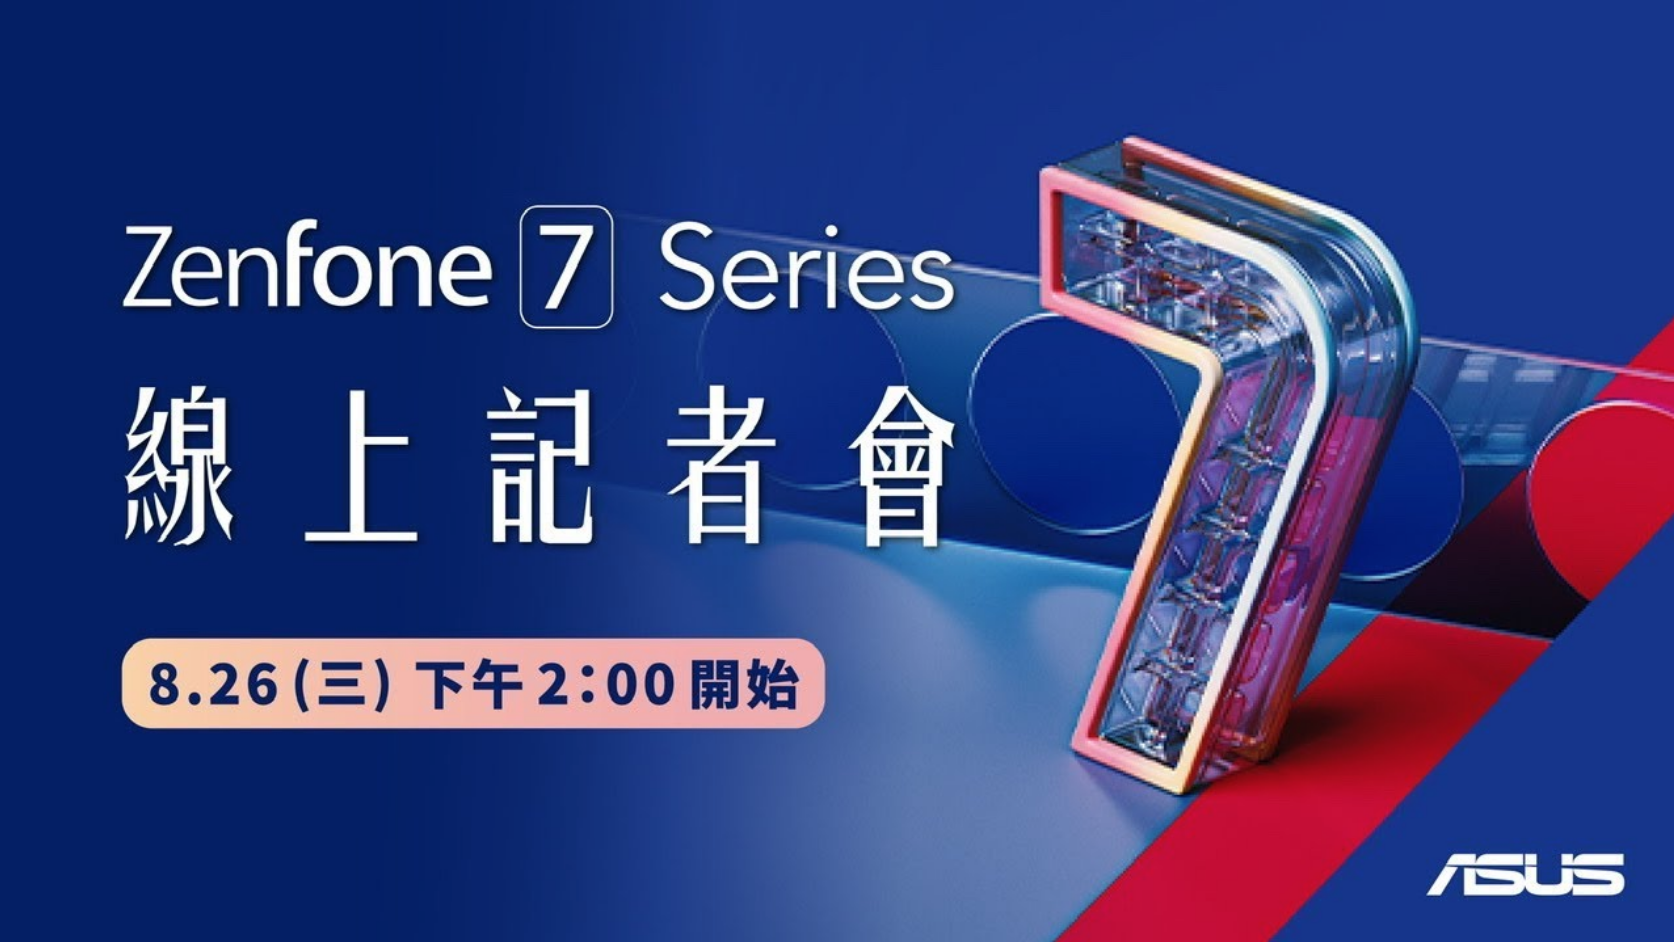 Asus Zenfone 7 series to launch on 26 August